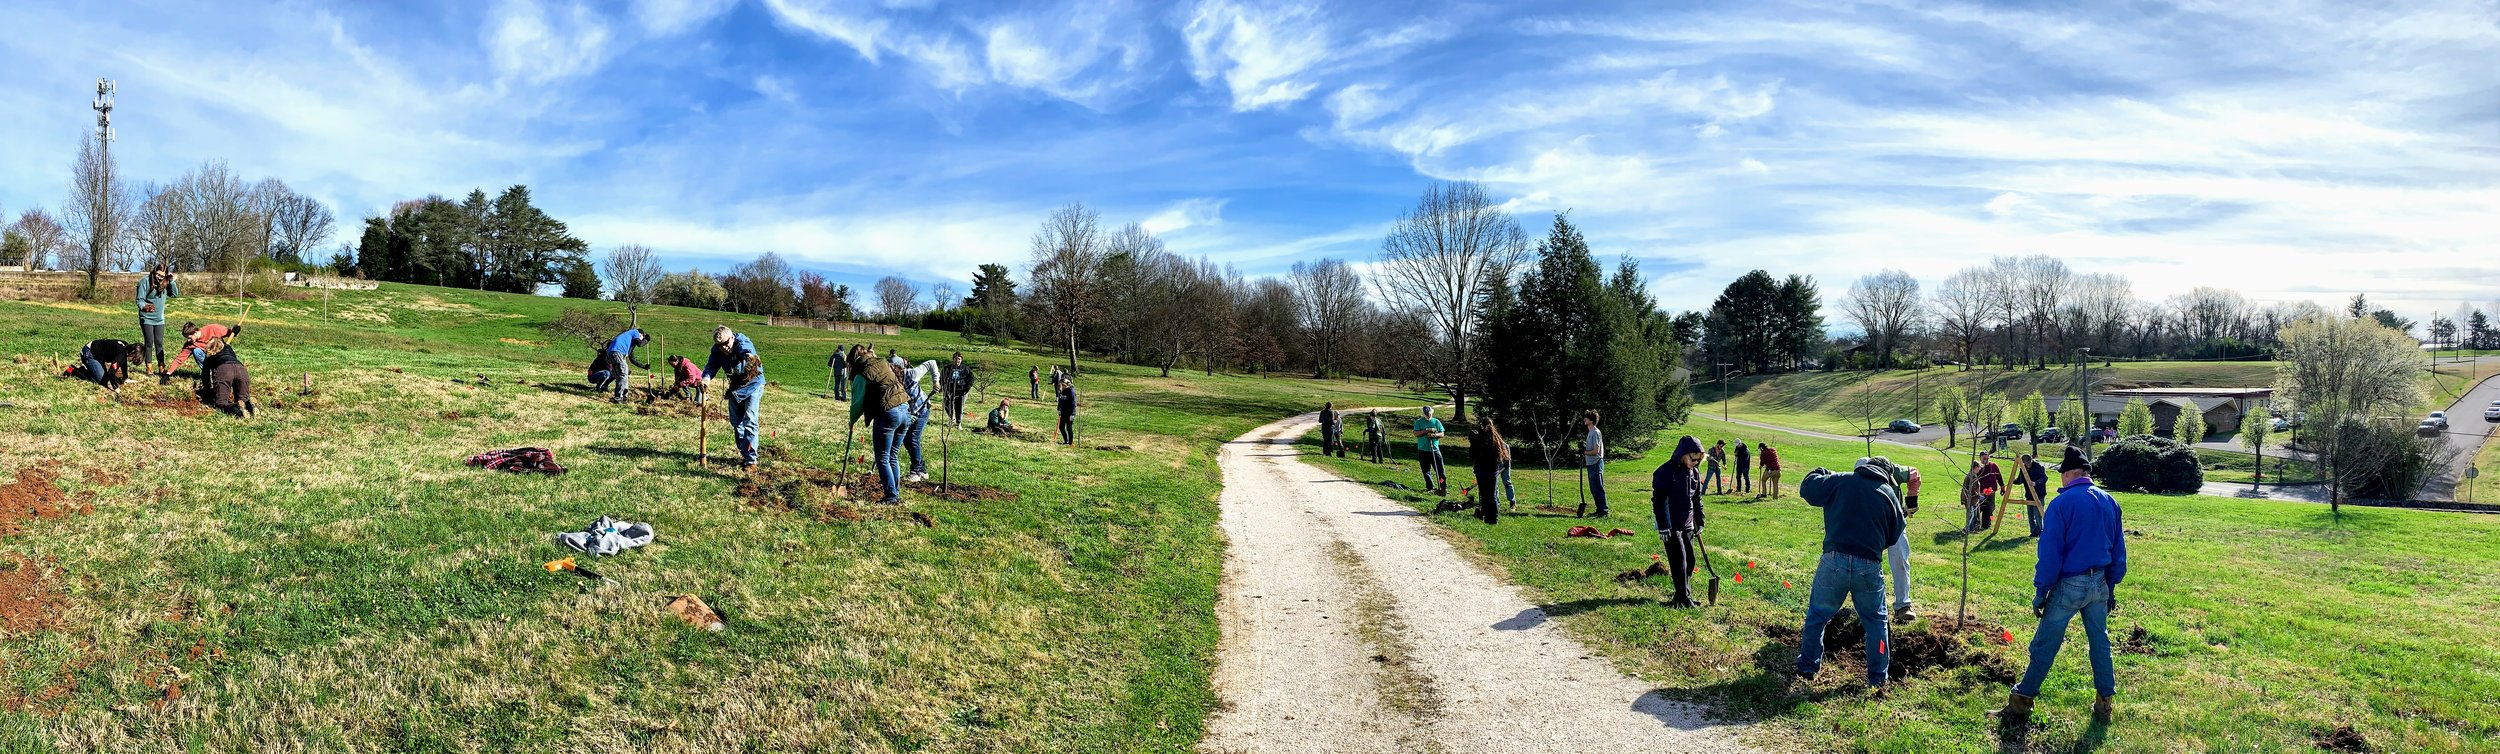 Tree Planting March 2019 at the  Knoxville Botanical Garden and Arboretum  in collaboration with the  Center for Urban Agriculture .